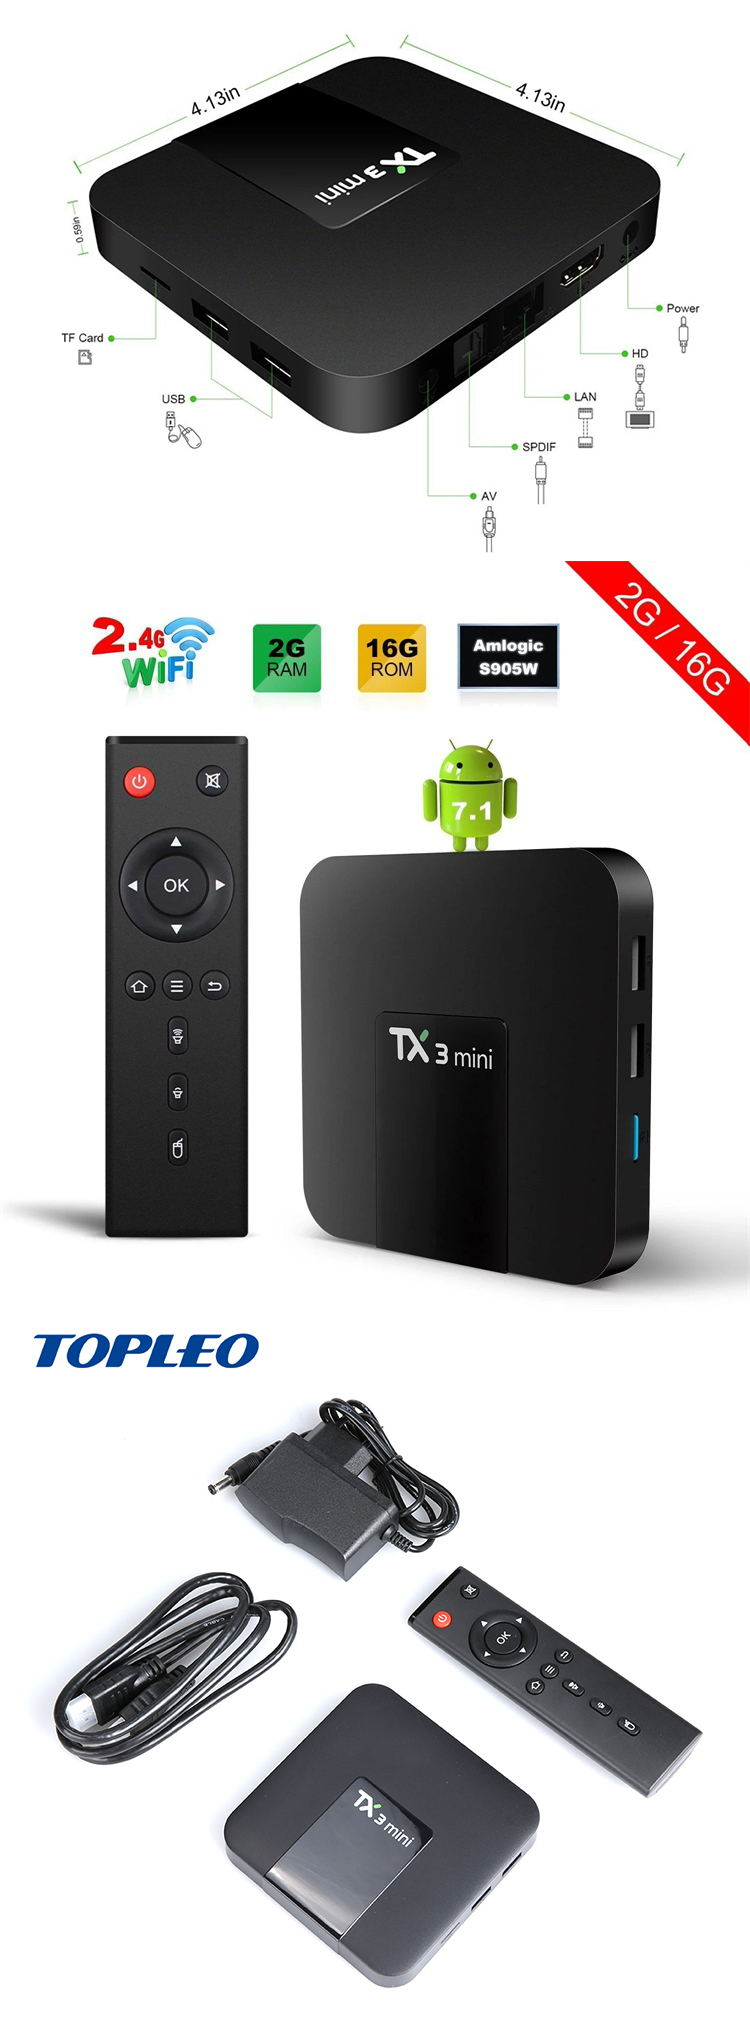 Günstigster neupreis Android 7.1.2 Amlogic S905W smart x96 android tv box 2 gb 16 gb 1 GB 8 GB